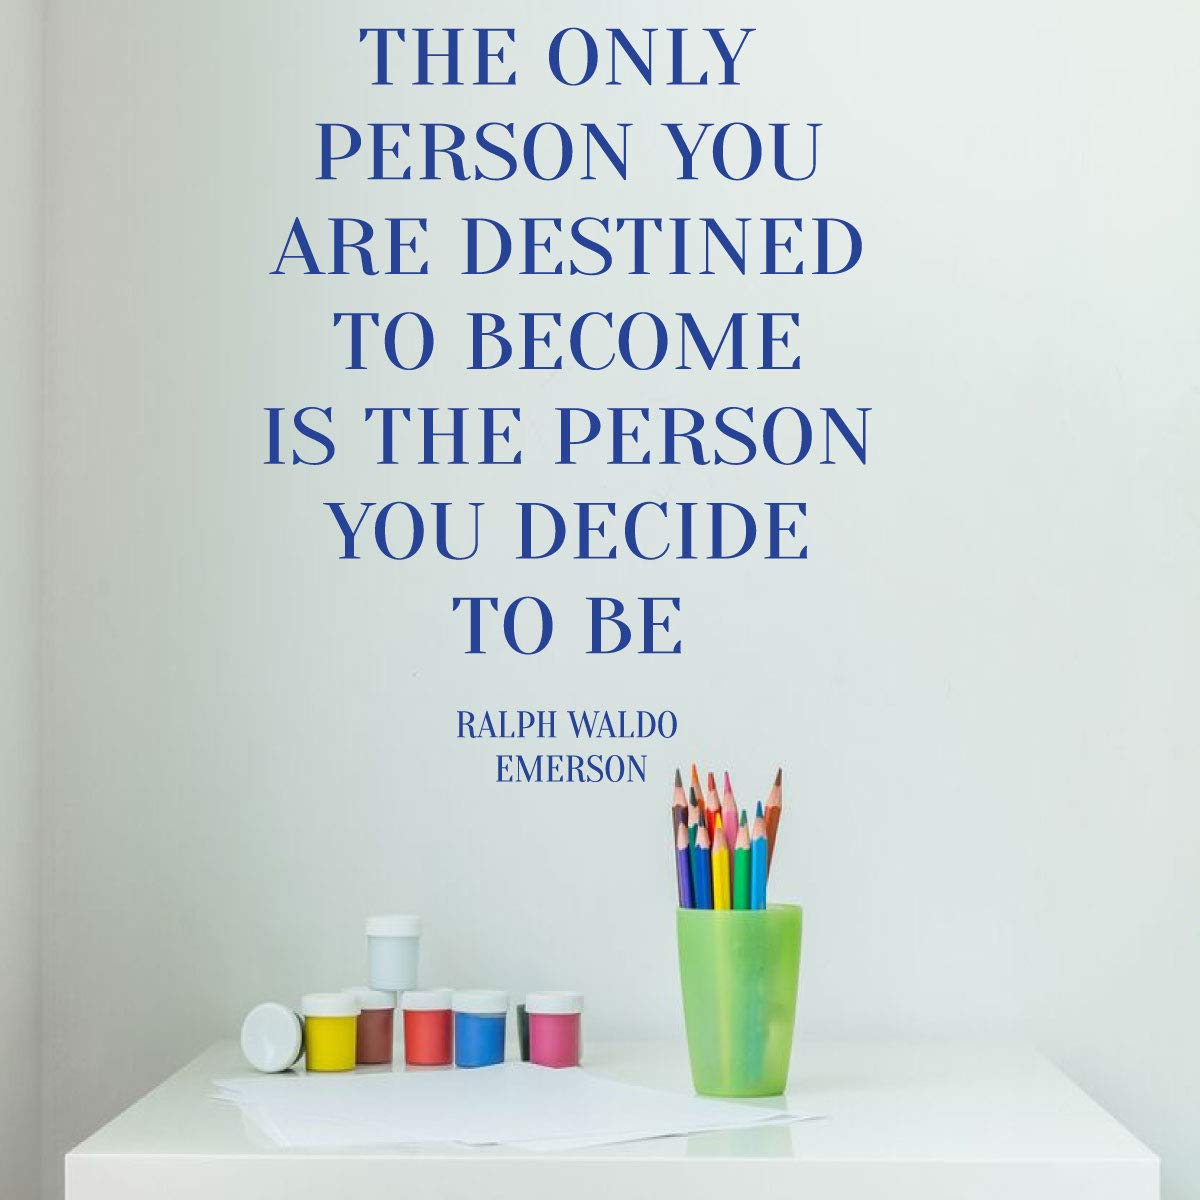 Ralph Waldo Emerson Motivational Quote Decor - Living Room, Bedroom or Office - Large, Medium and Small Sizes